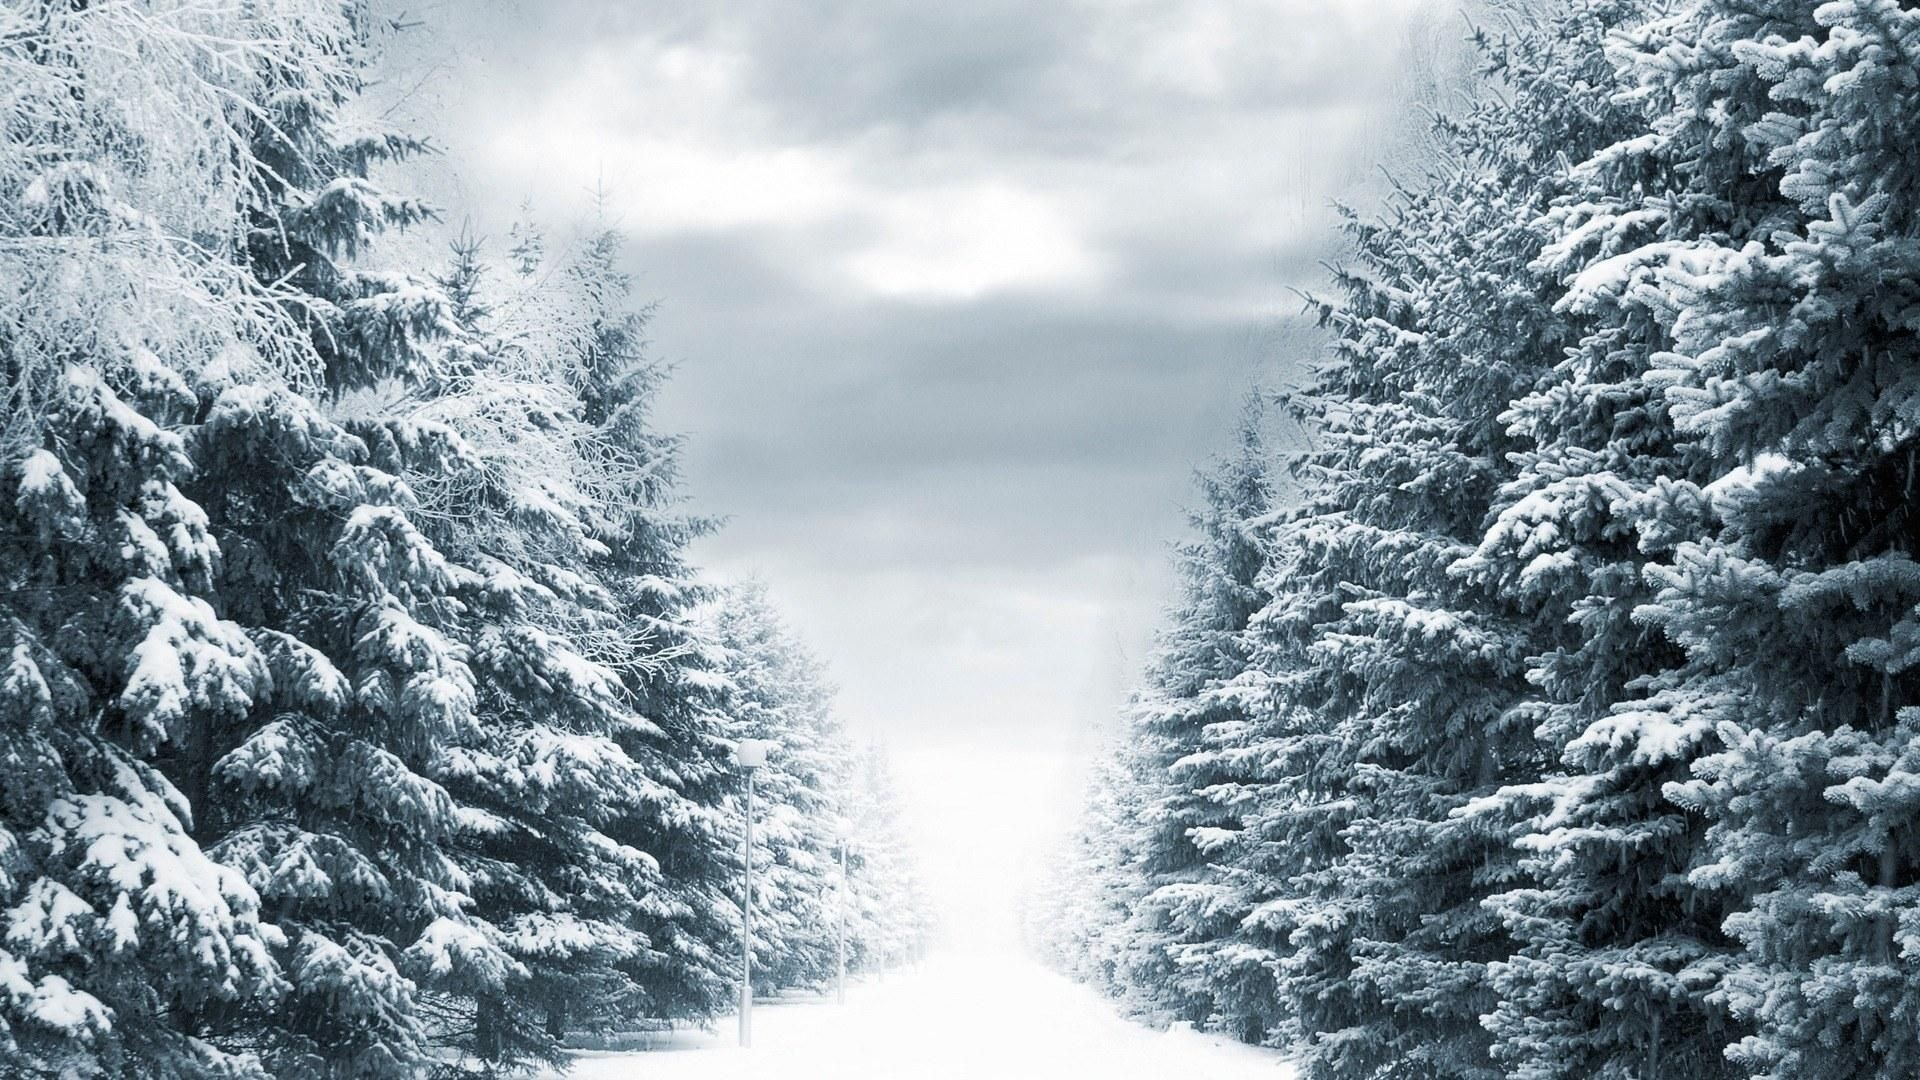 Res: 1920x1080, Winter Scene wallpaper pine trees covered in snow